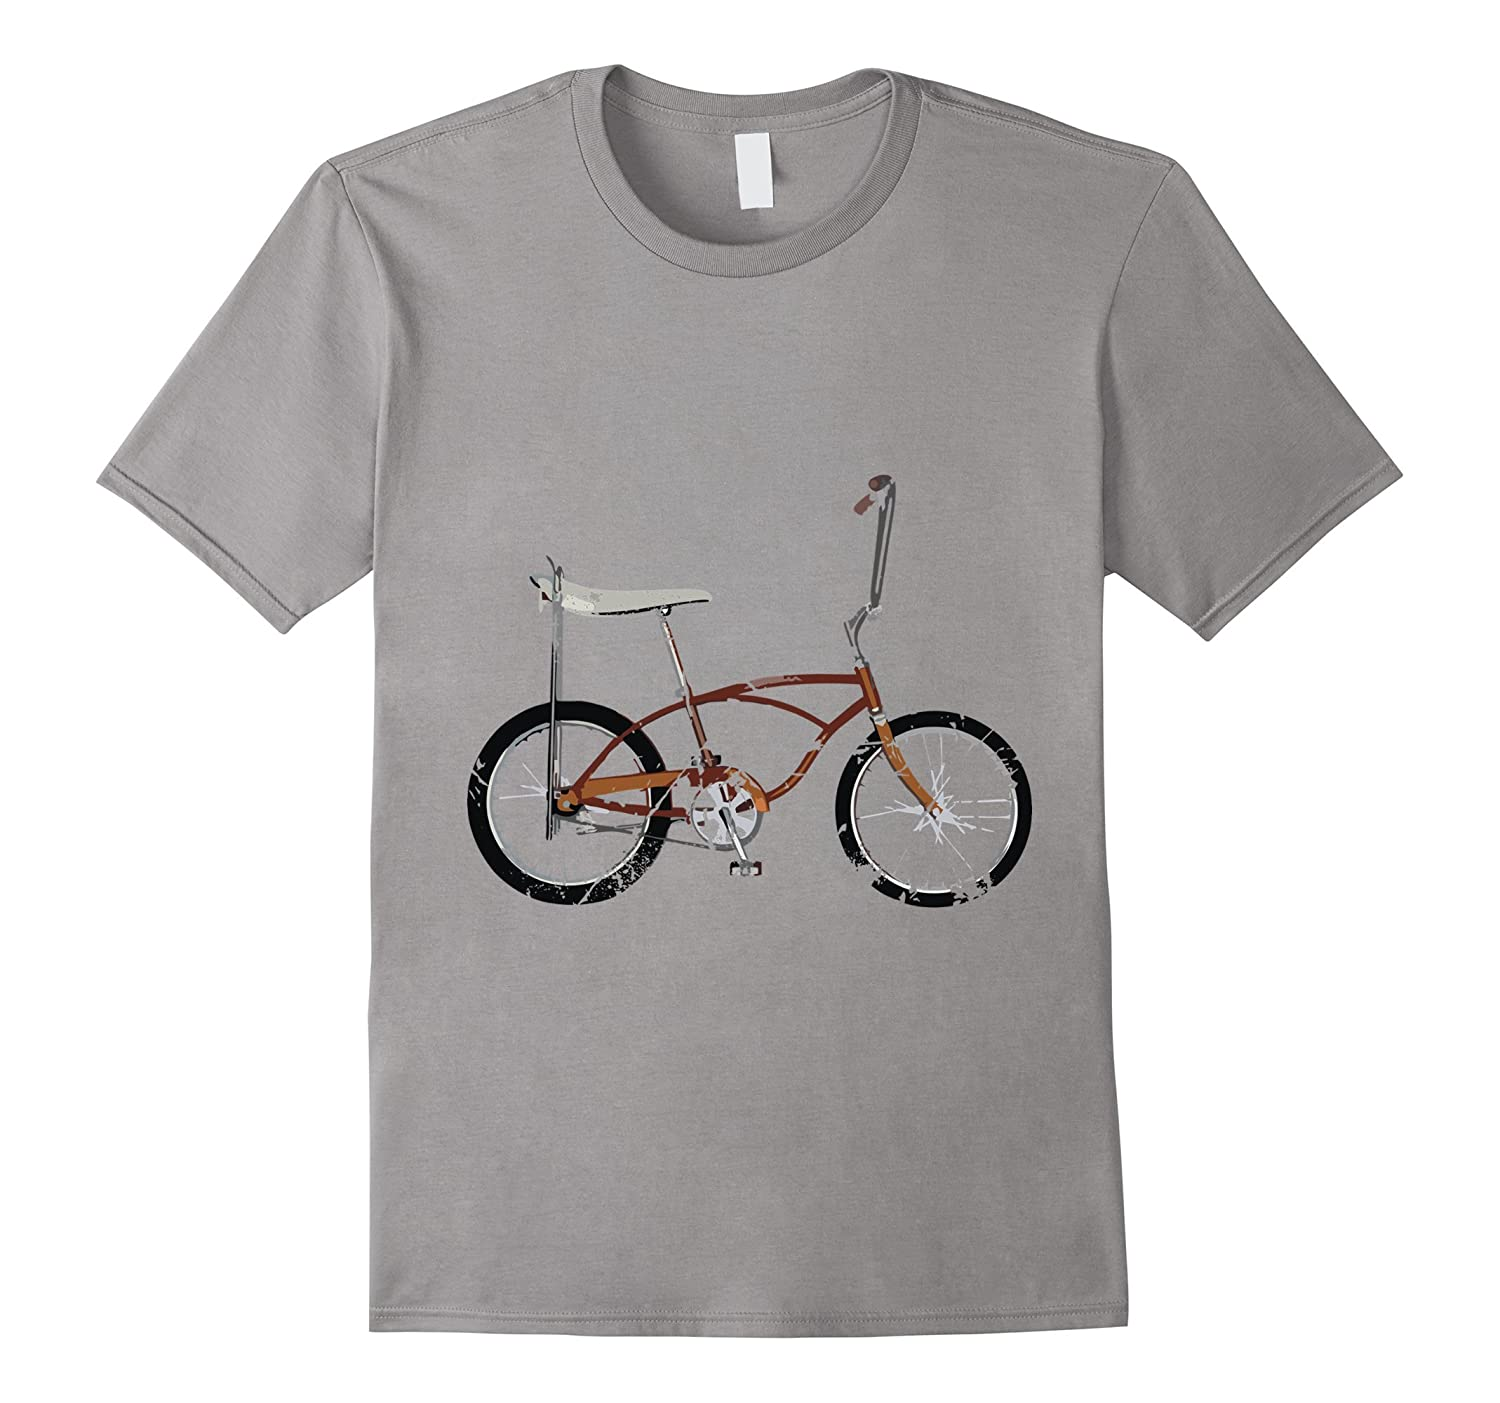 4b4cd208b Vintage bicycle t shirt-PL – Polozatee